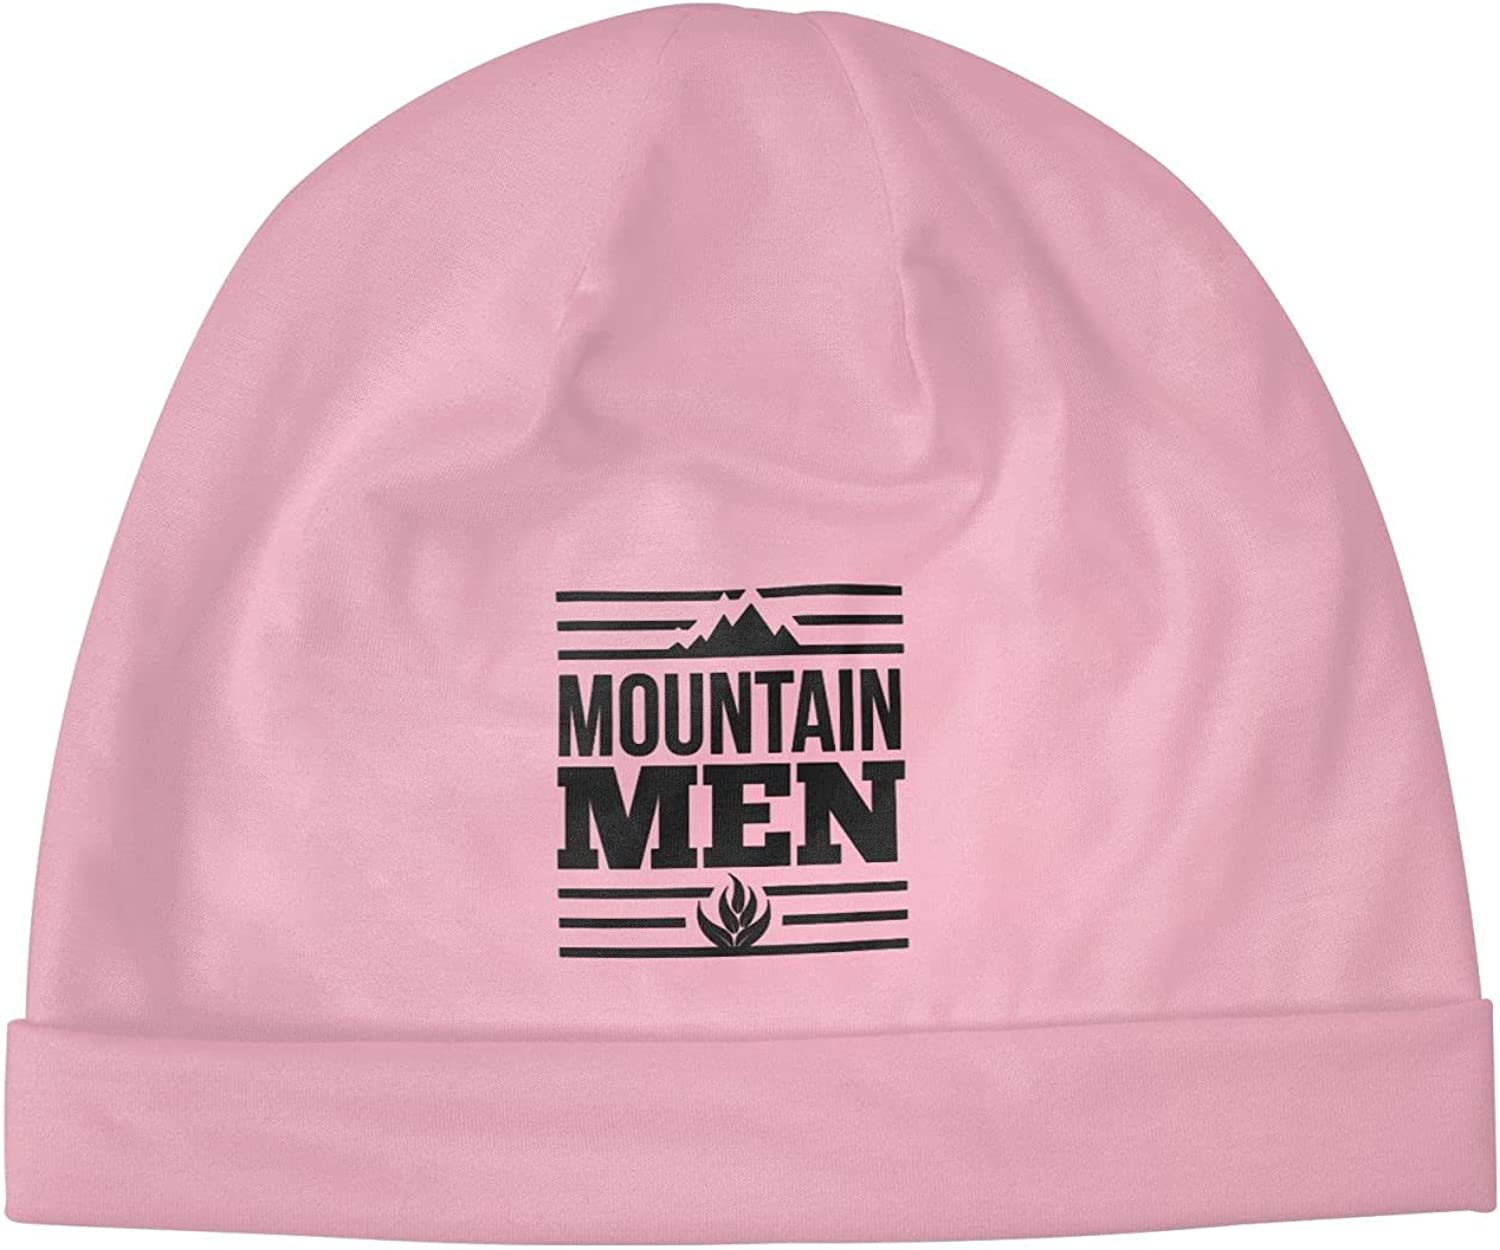 Unisex Adult Men's Mountain Beanie Max New item 55% OFF Hat Classic Cap Ma for Sports